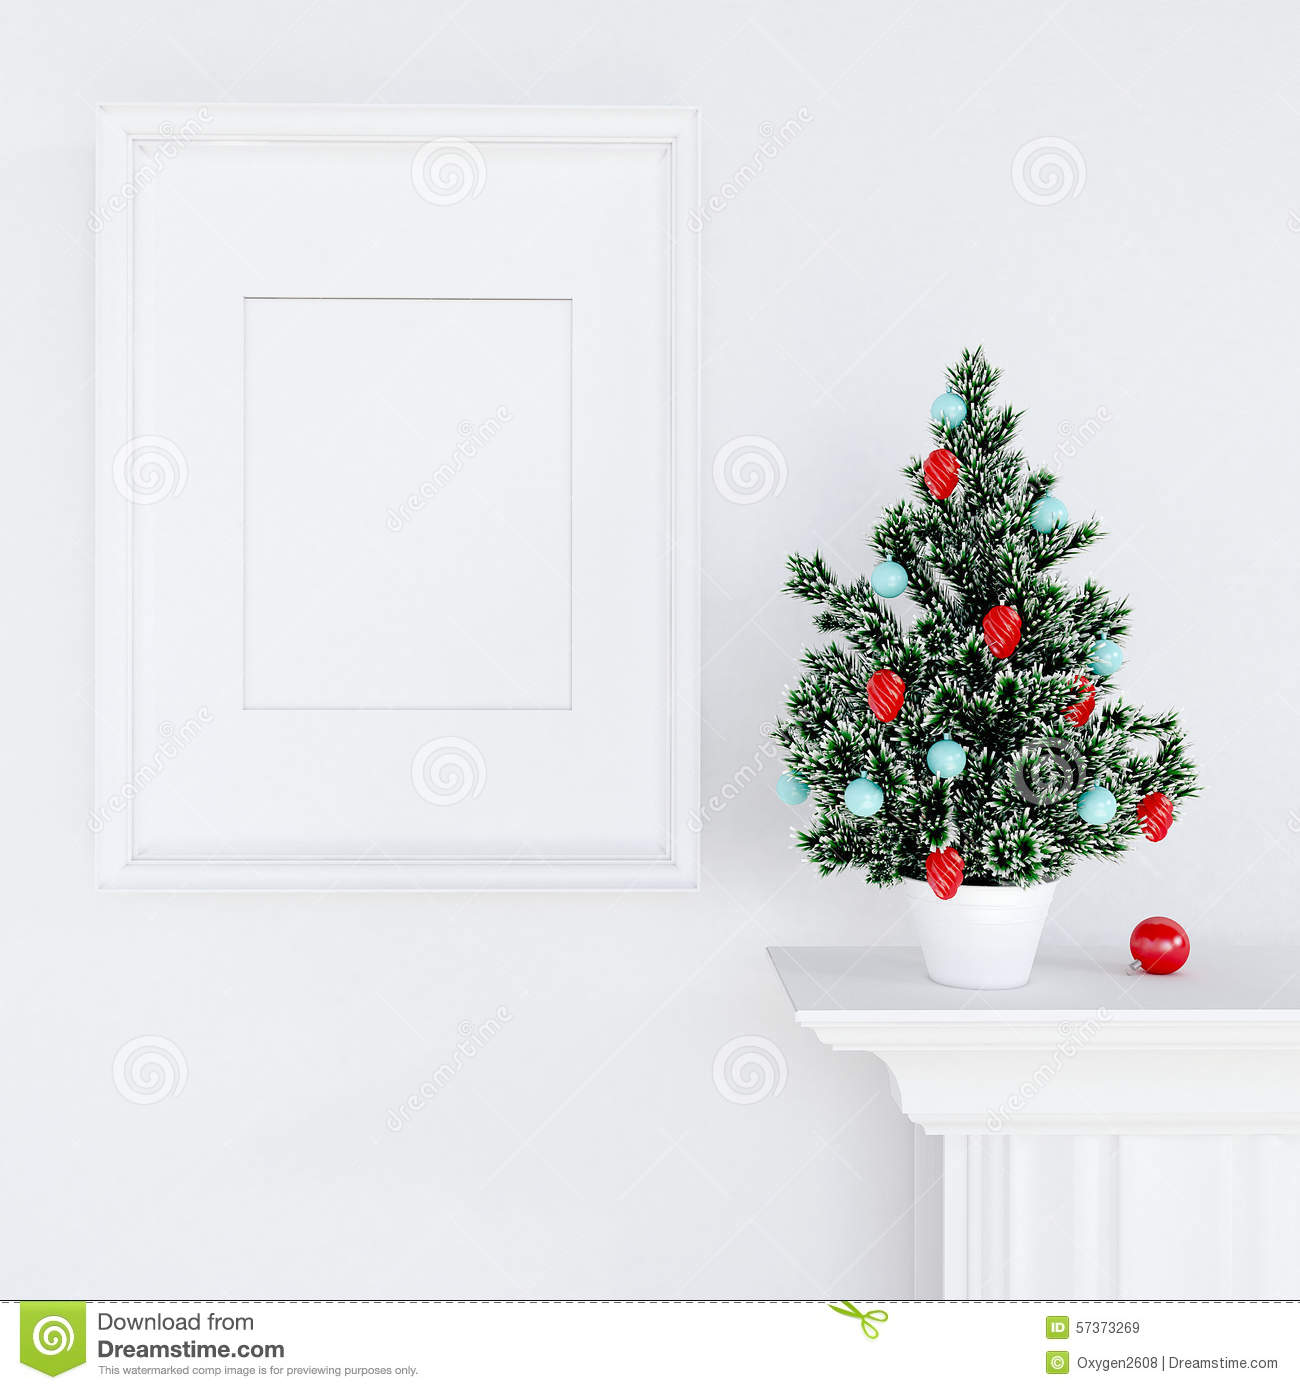 Mock Up Poster And Christmas Tree On A Dresser Stock Illustration Image 57373269